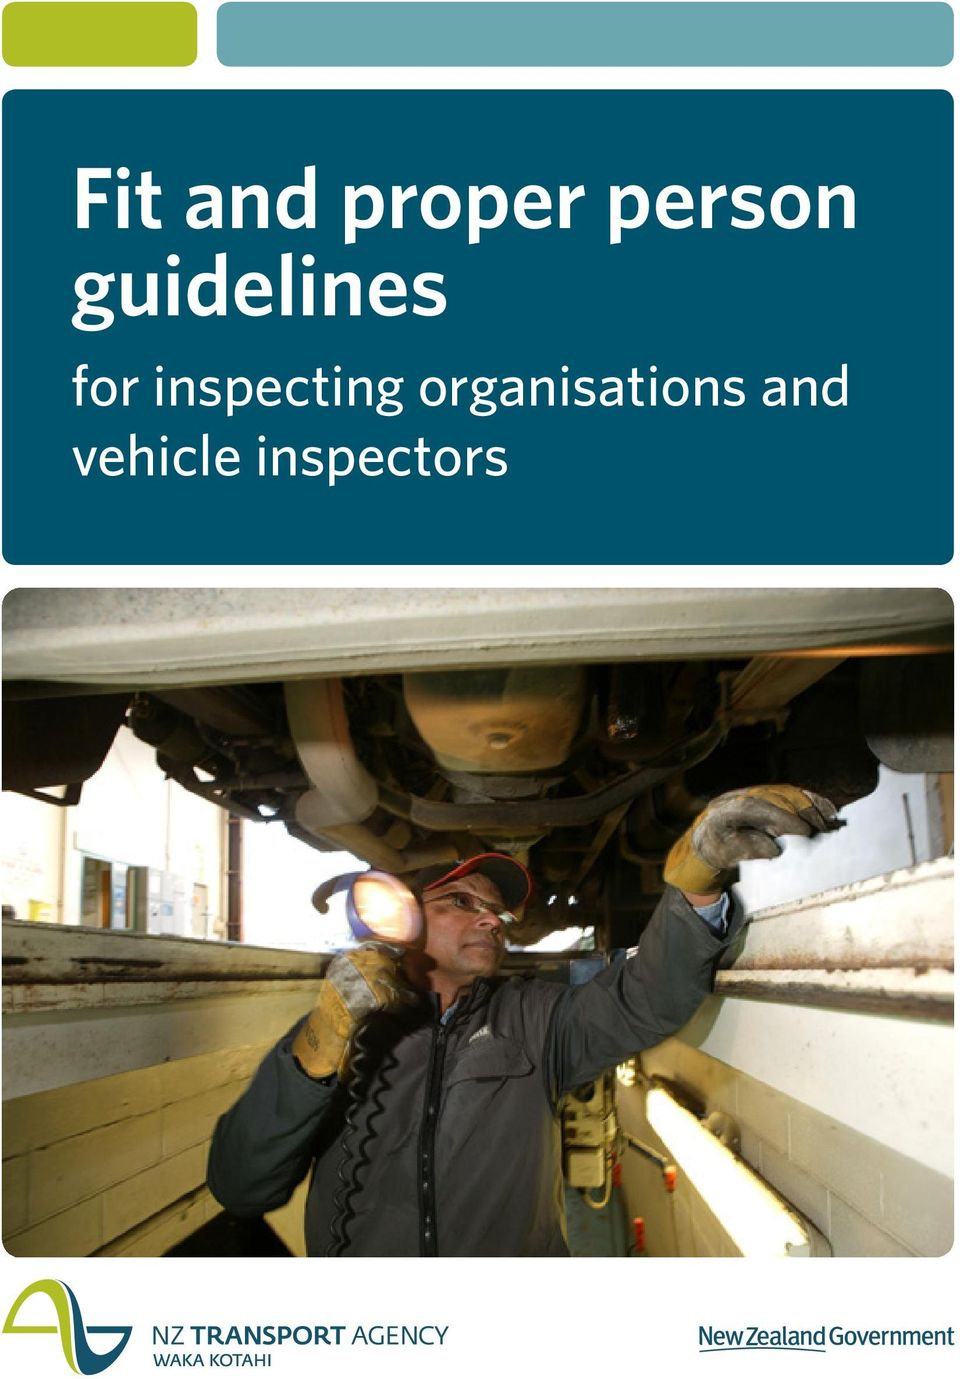 for inspecting